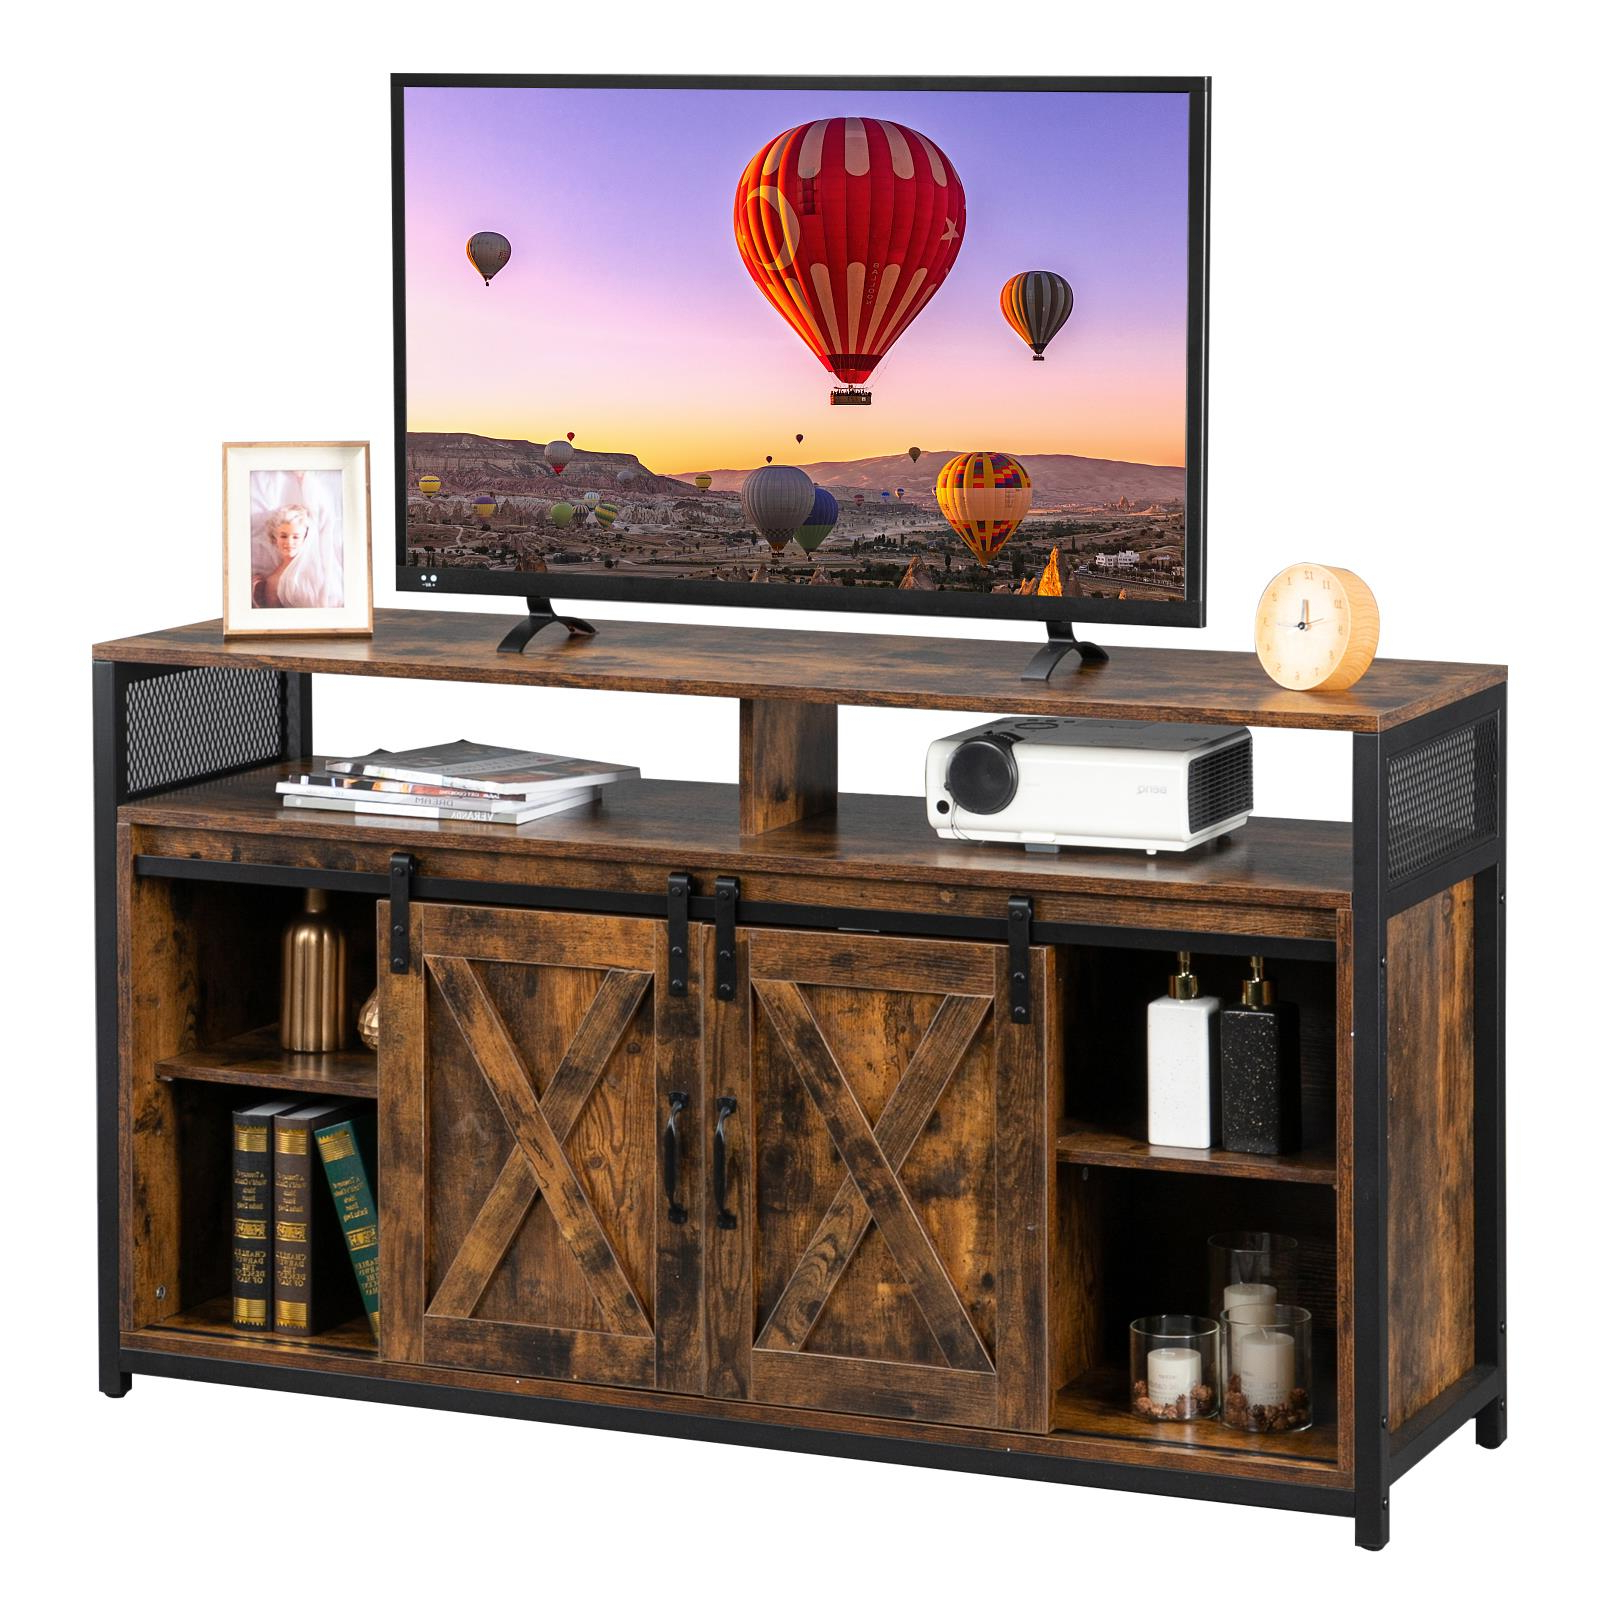 Ktaxon Tv Stand For 55 Inch Tv With Barn Doors,farmhouse With Avalene Rustic Farmhouse Corner Tv Stands (View 18 of 20)